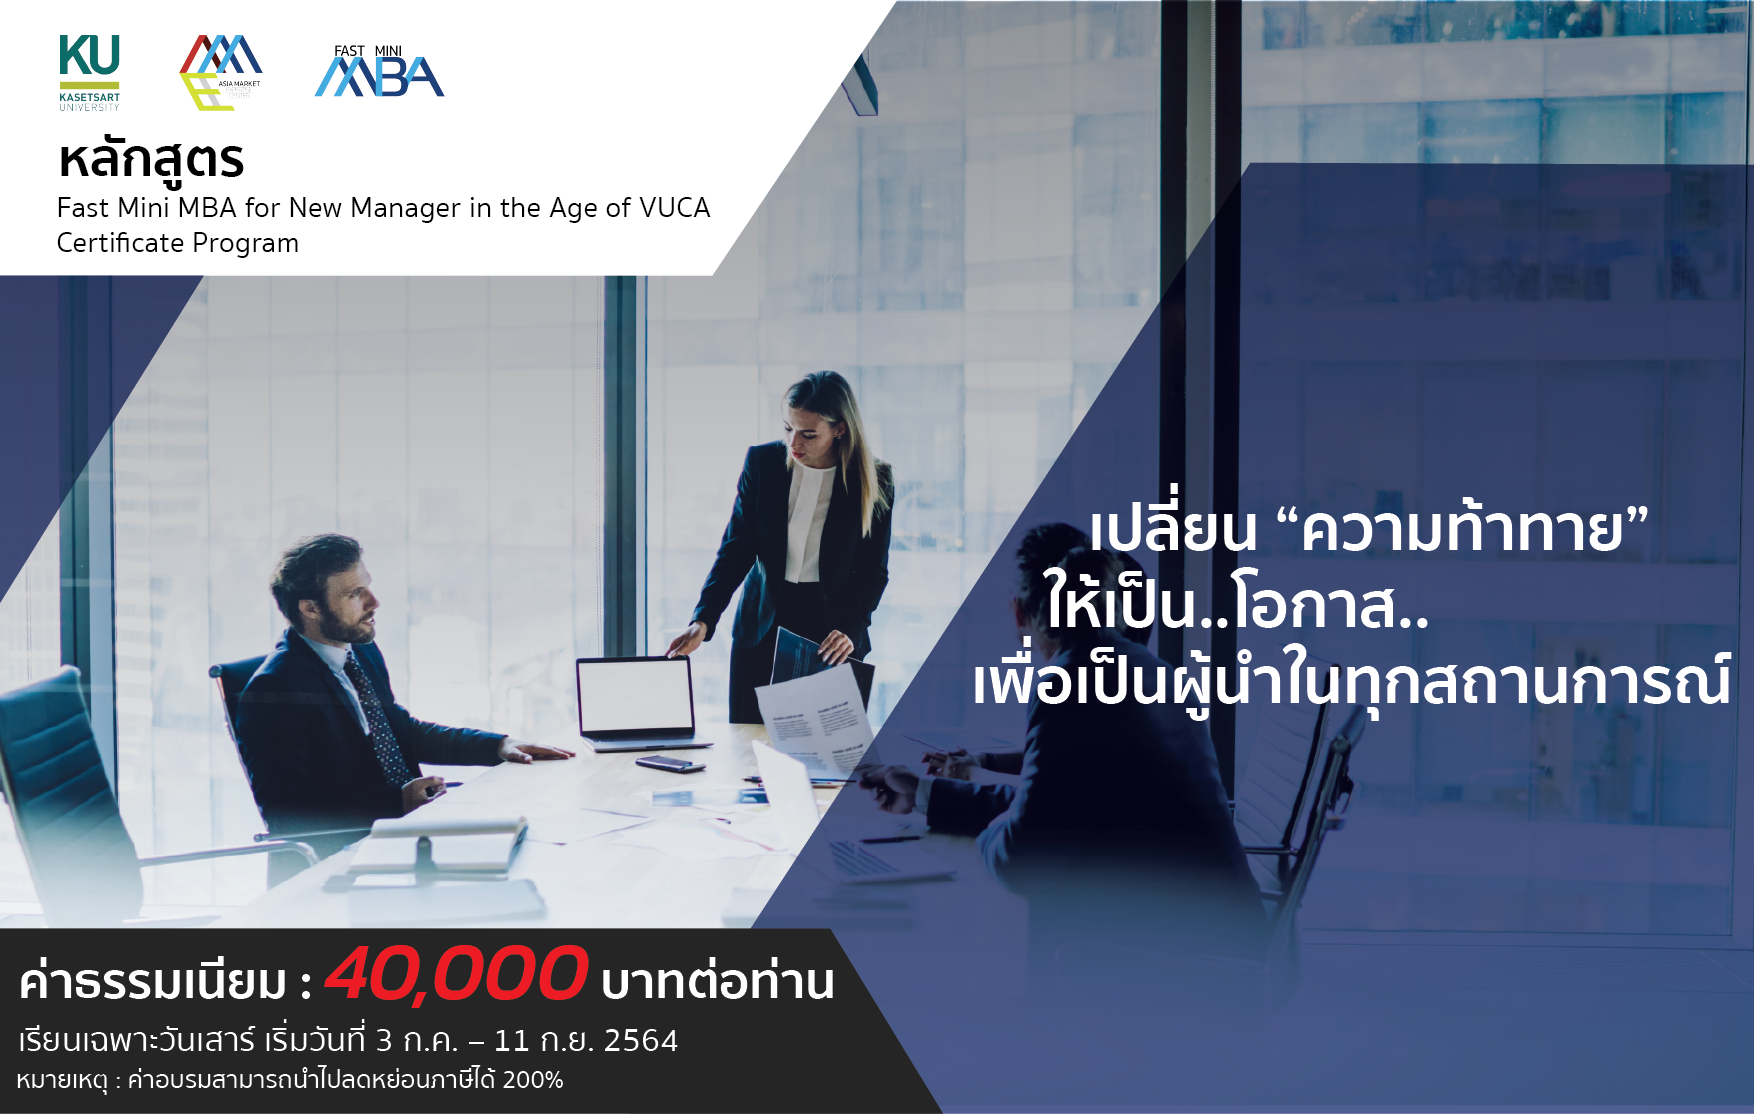 Fast Mini MBA for New Manager in the Age of VUCA มหาวิทยาลัยเกษตรศาสตร์